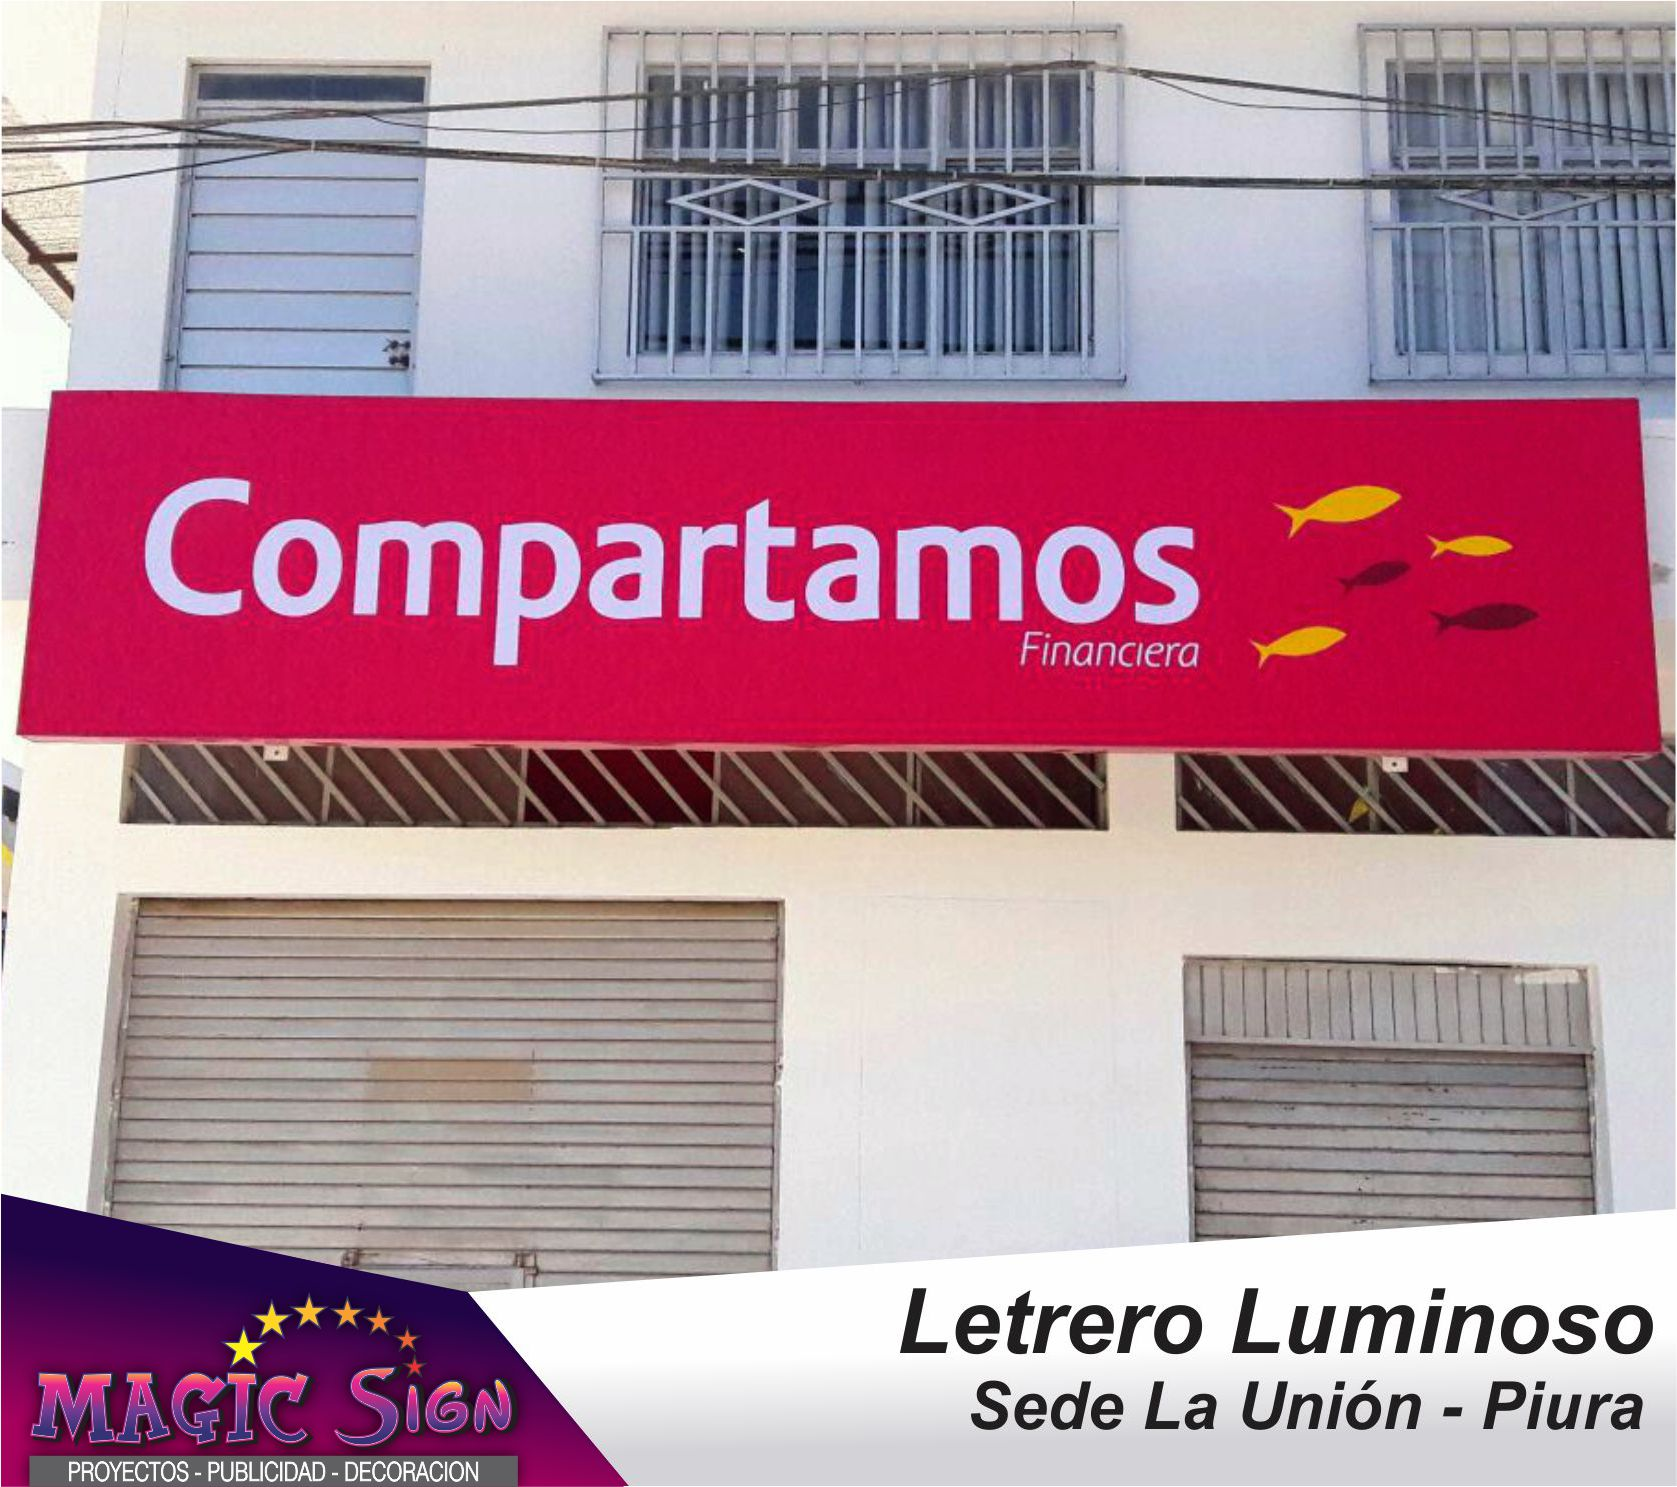 Letrero Luminoso